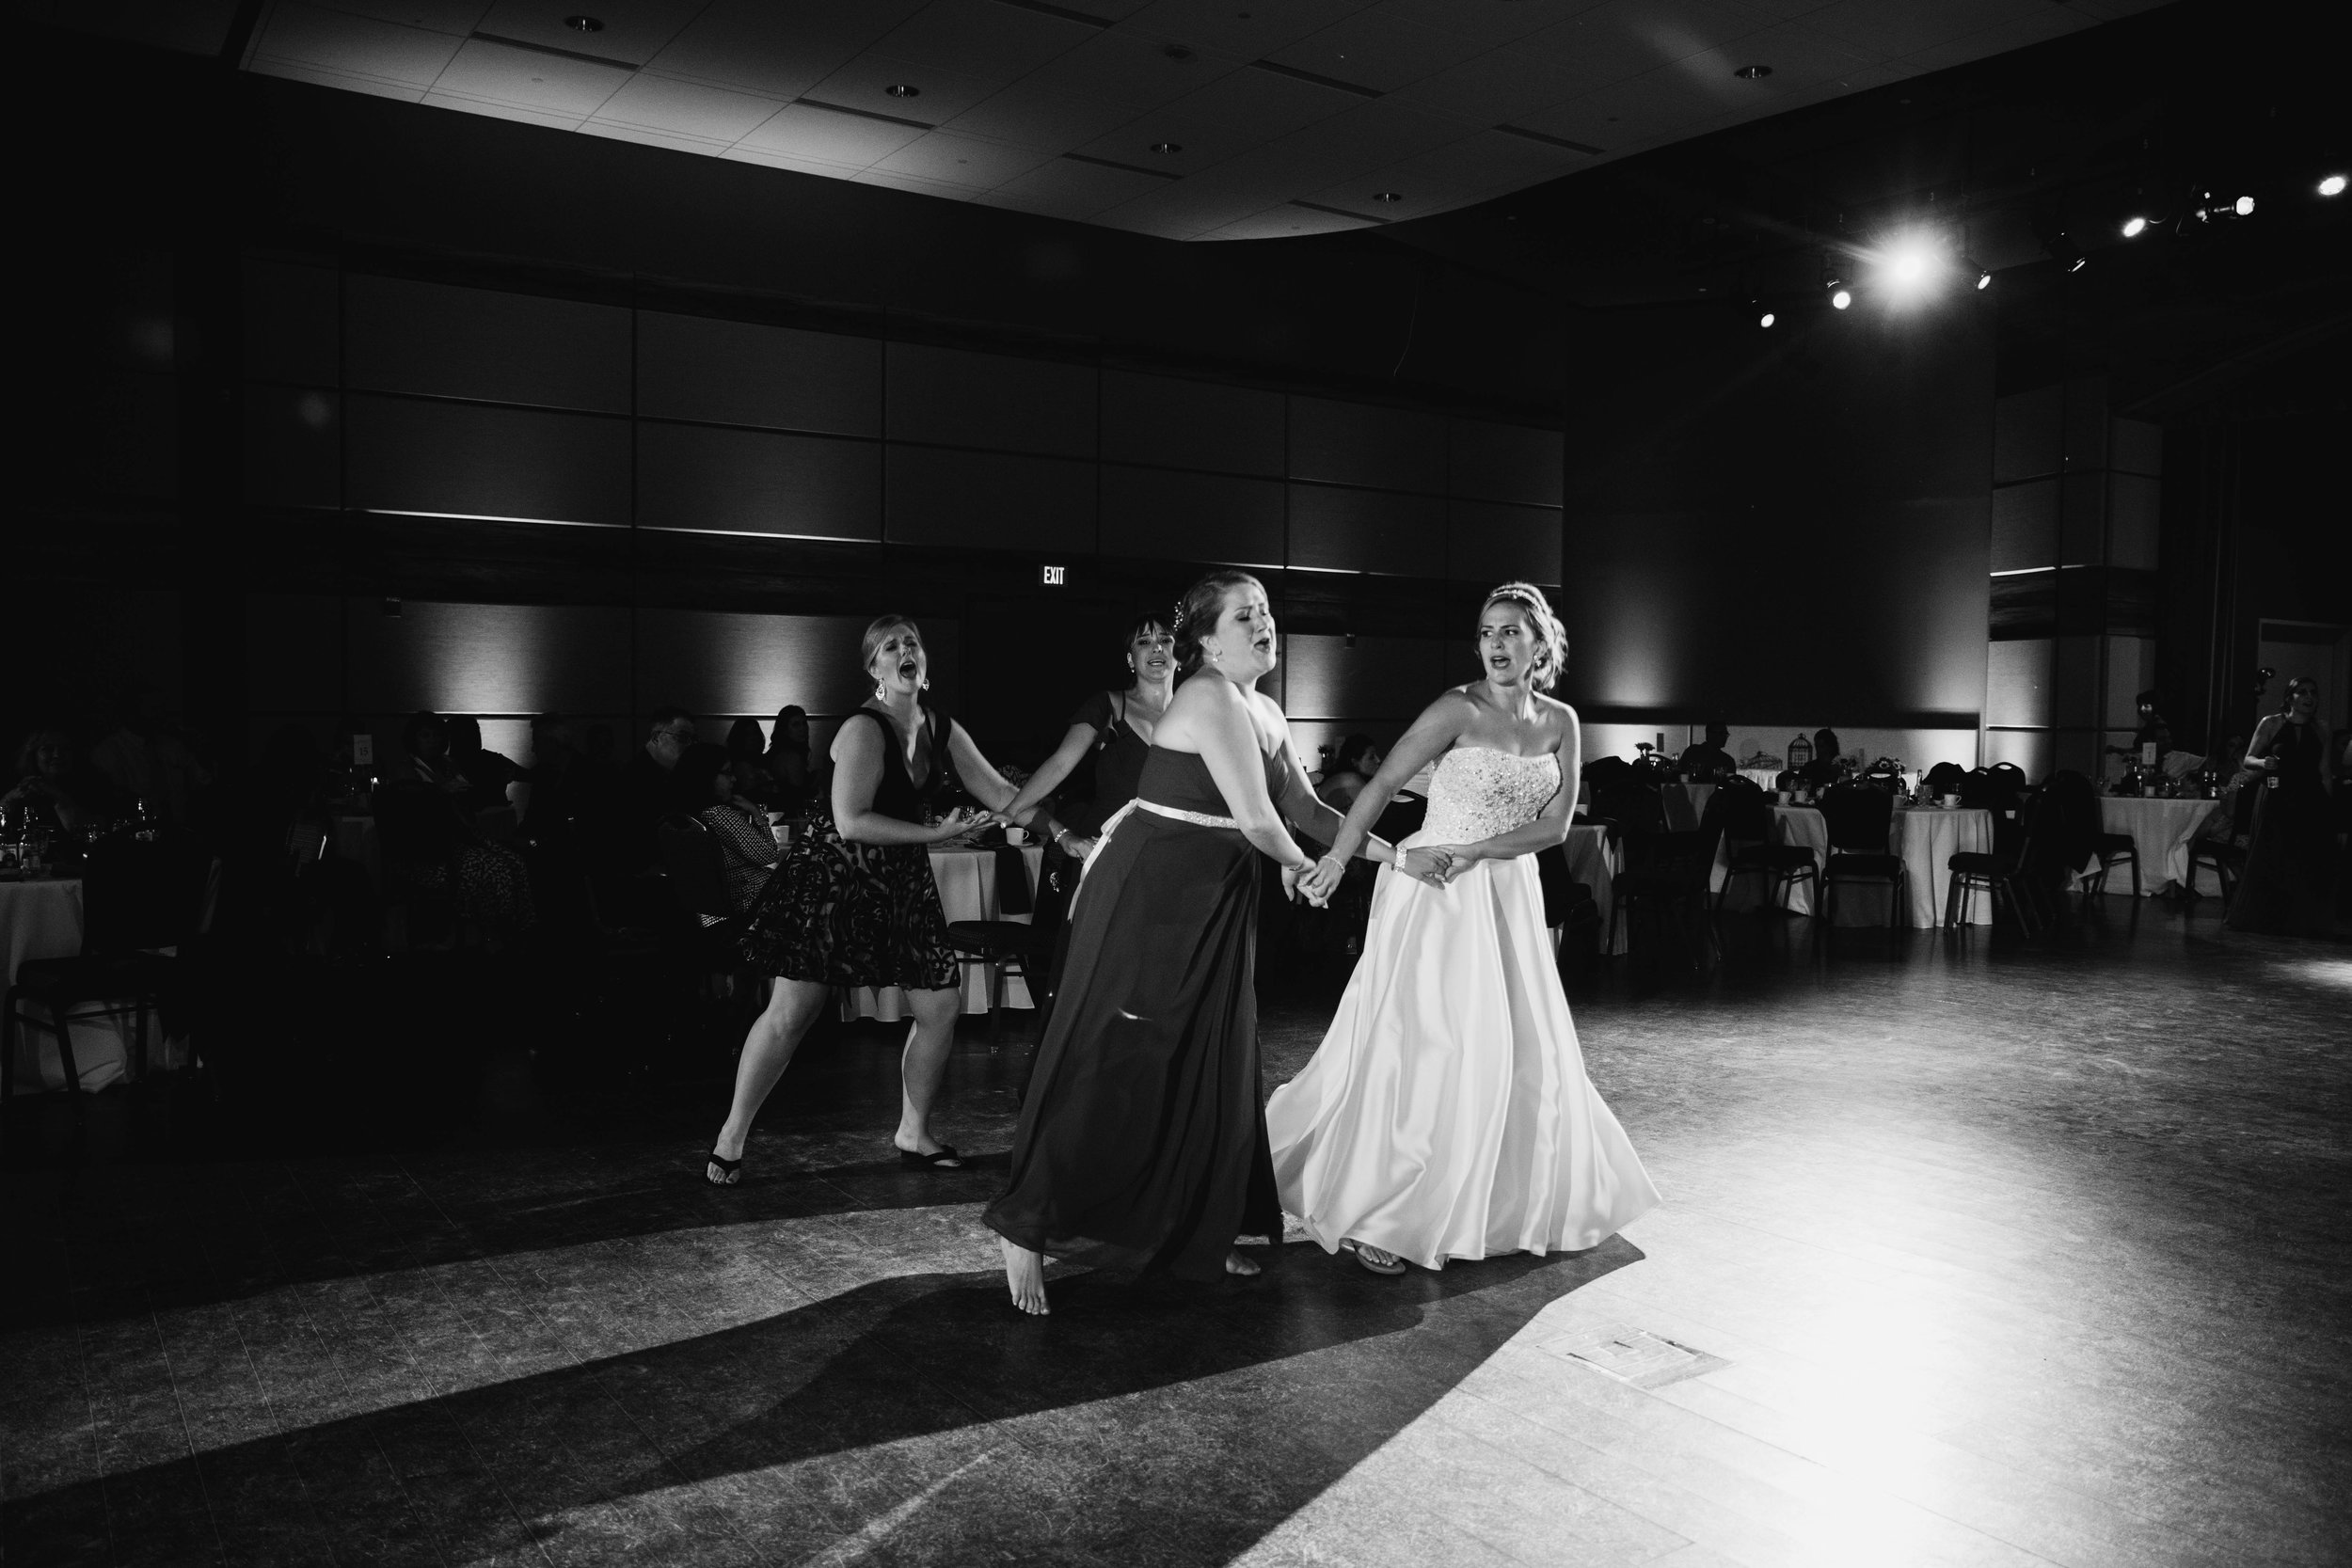 Kim and Dominique  - Cape May Convention Hall Wedding - 170.jpg